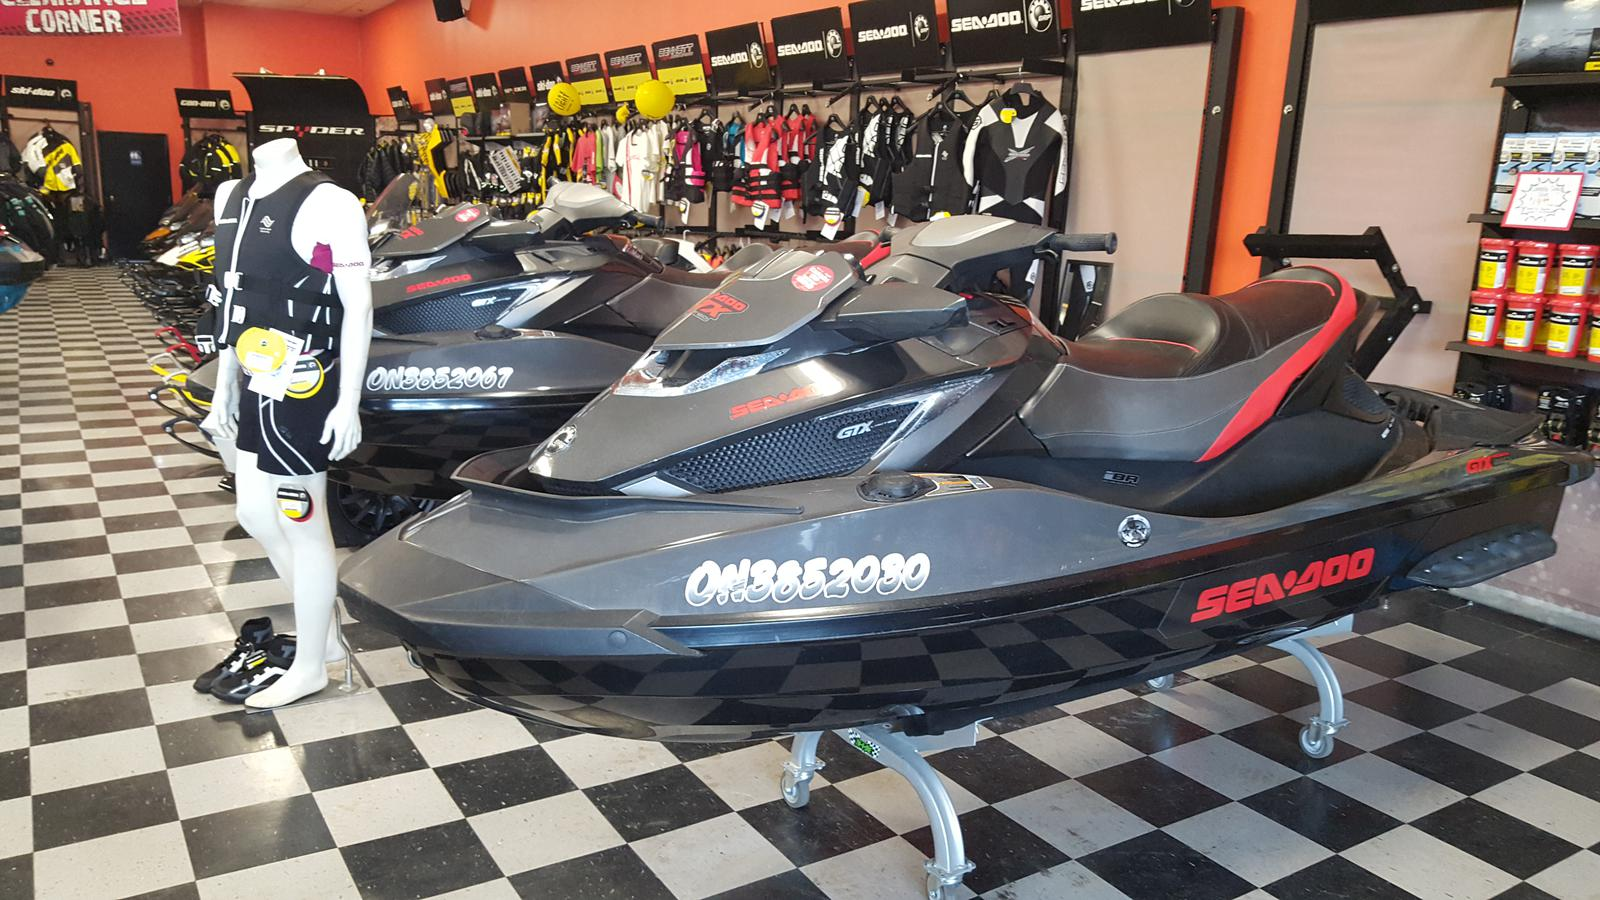 For Sale: 2013 Sea Doo Pwc Gtx Ltd Is 260 ft<br/>Bennett Powersports